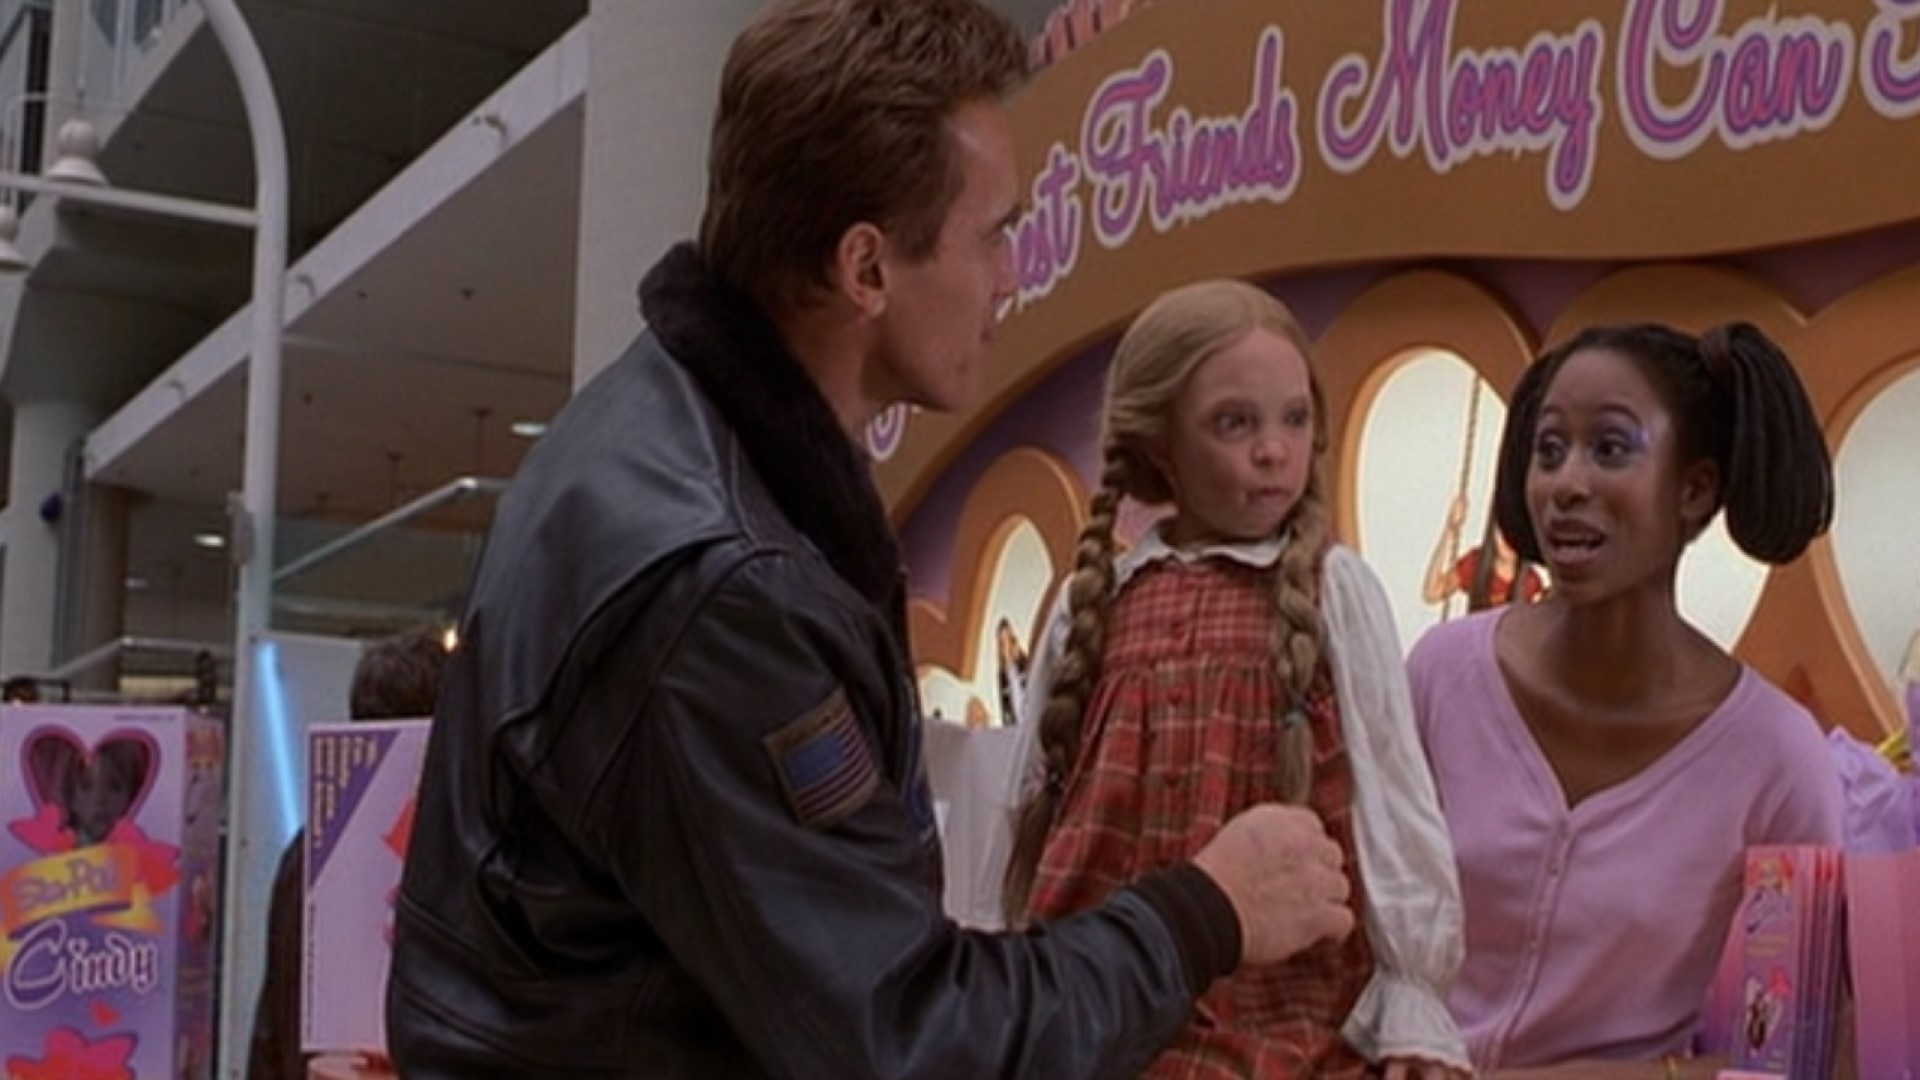 THE 6TH DAY (2000) - Adam Gibson's (Arnold Schwarzenegger) Leather Jacket - Image 14 of 15